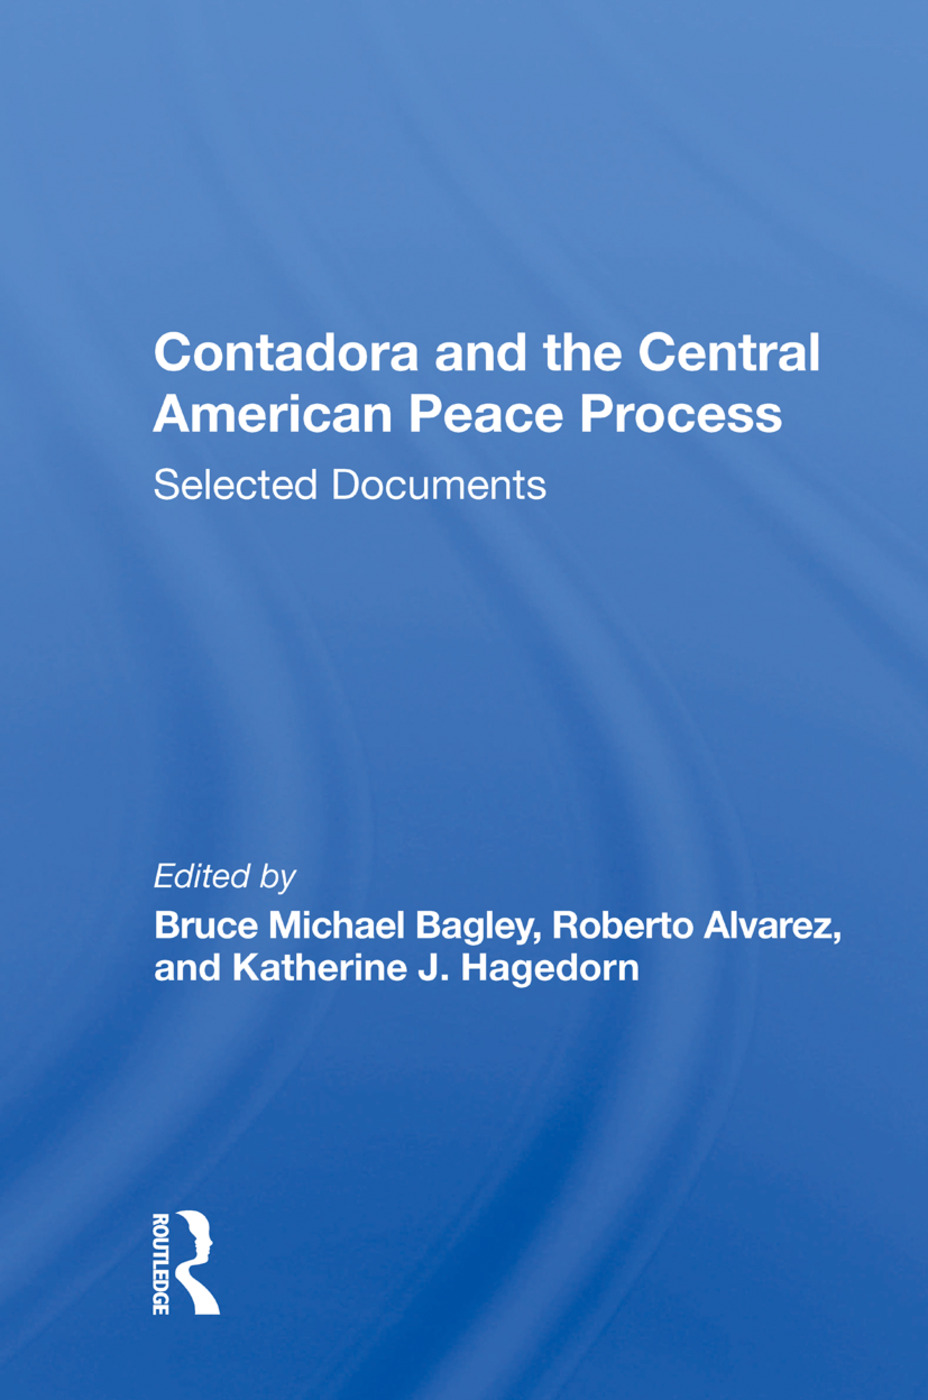 Contadora And The Central American Peace Process: Selected Documents book cover